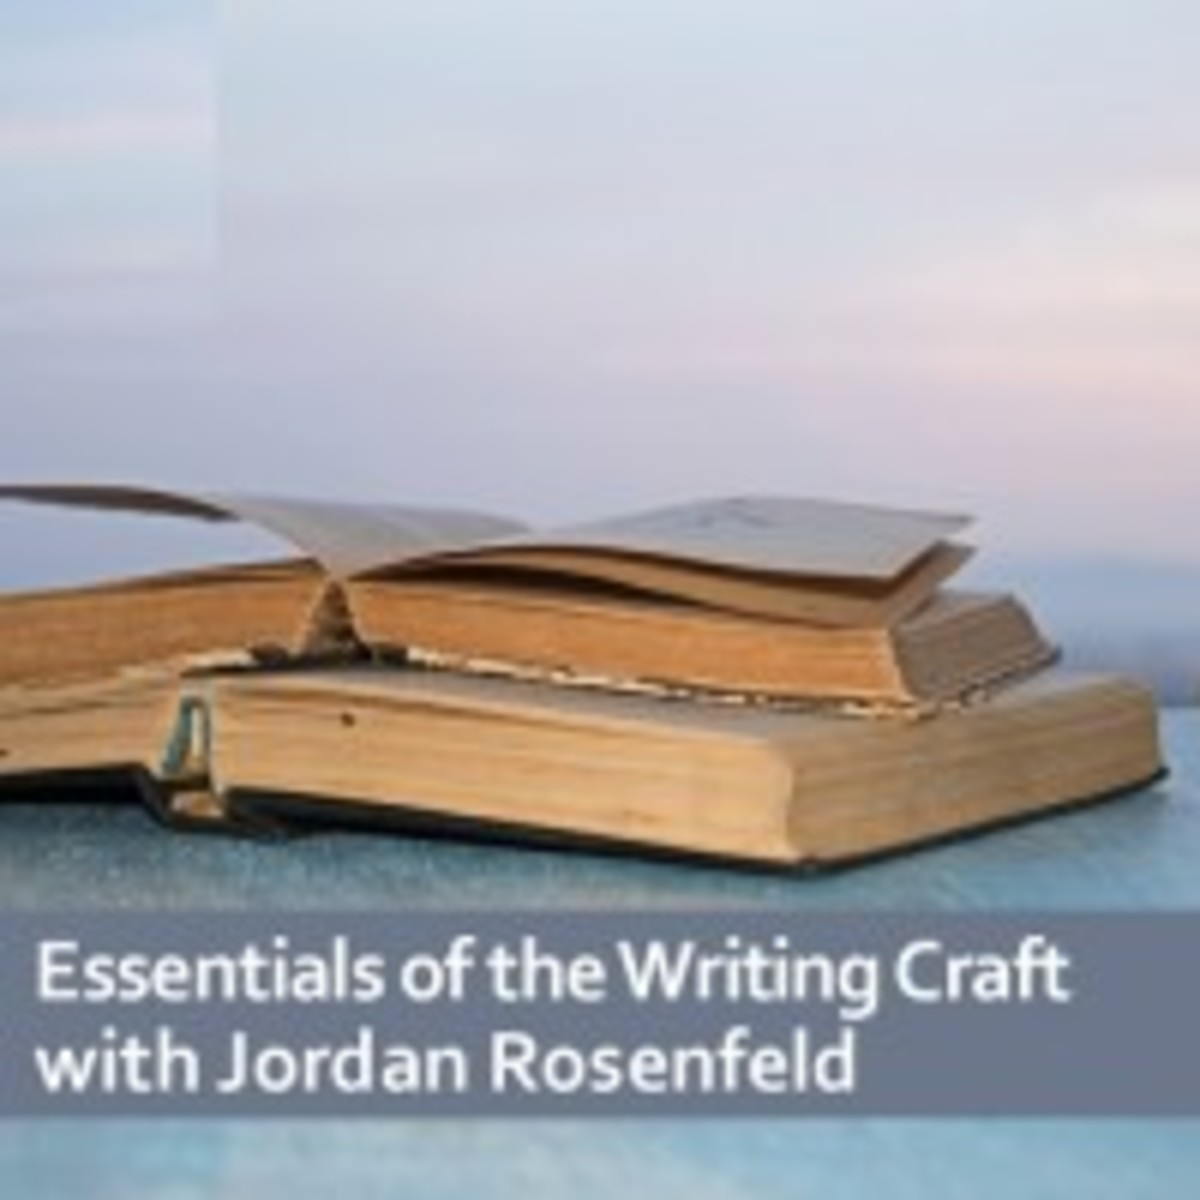 Essentials of the Writing Craft with Jordan Rosenfeld — 8 Books, Videos and Lessons for Writers